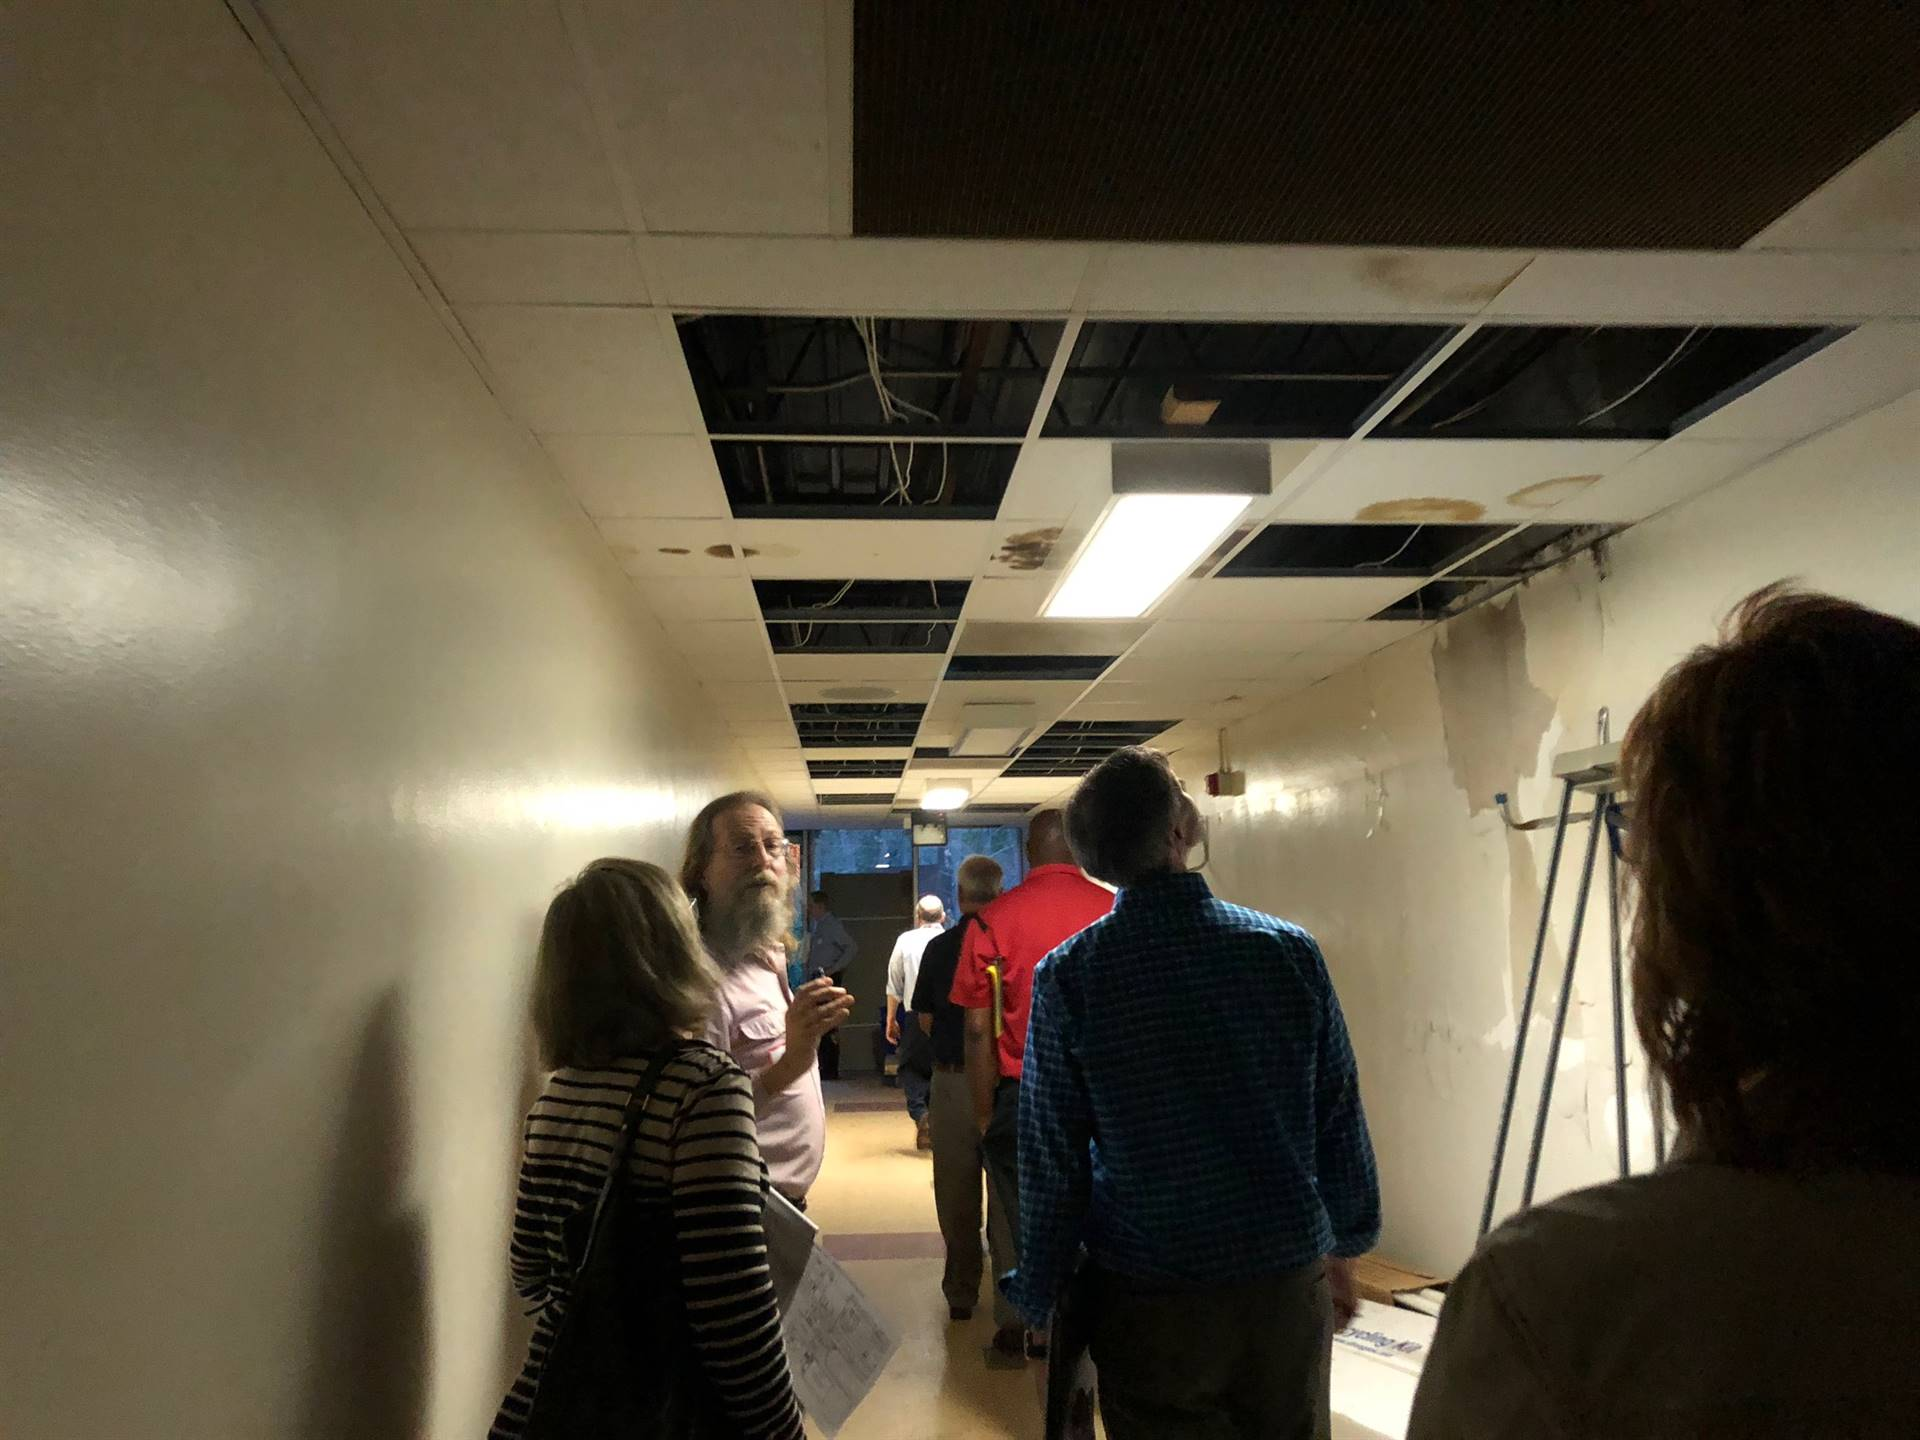 Facilities Assessment Task Force Tours 2018-2019